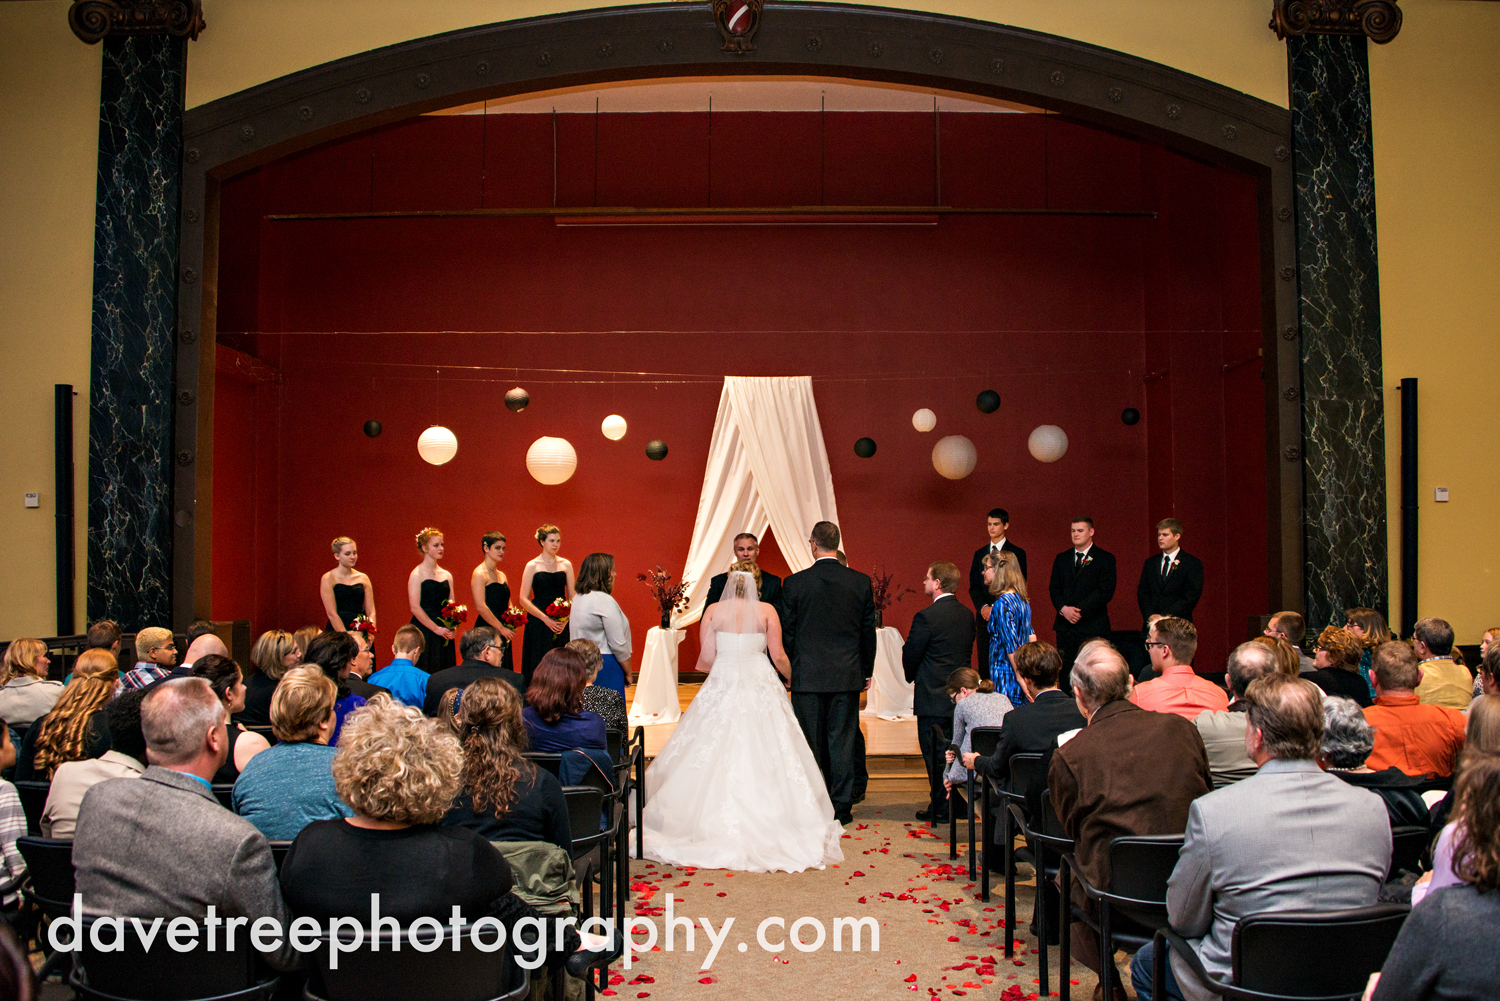 holland_wedding_photographer_36.jpg